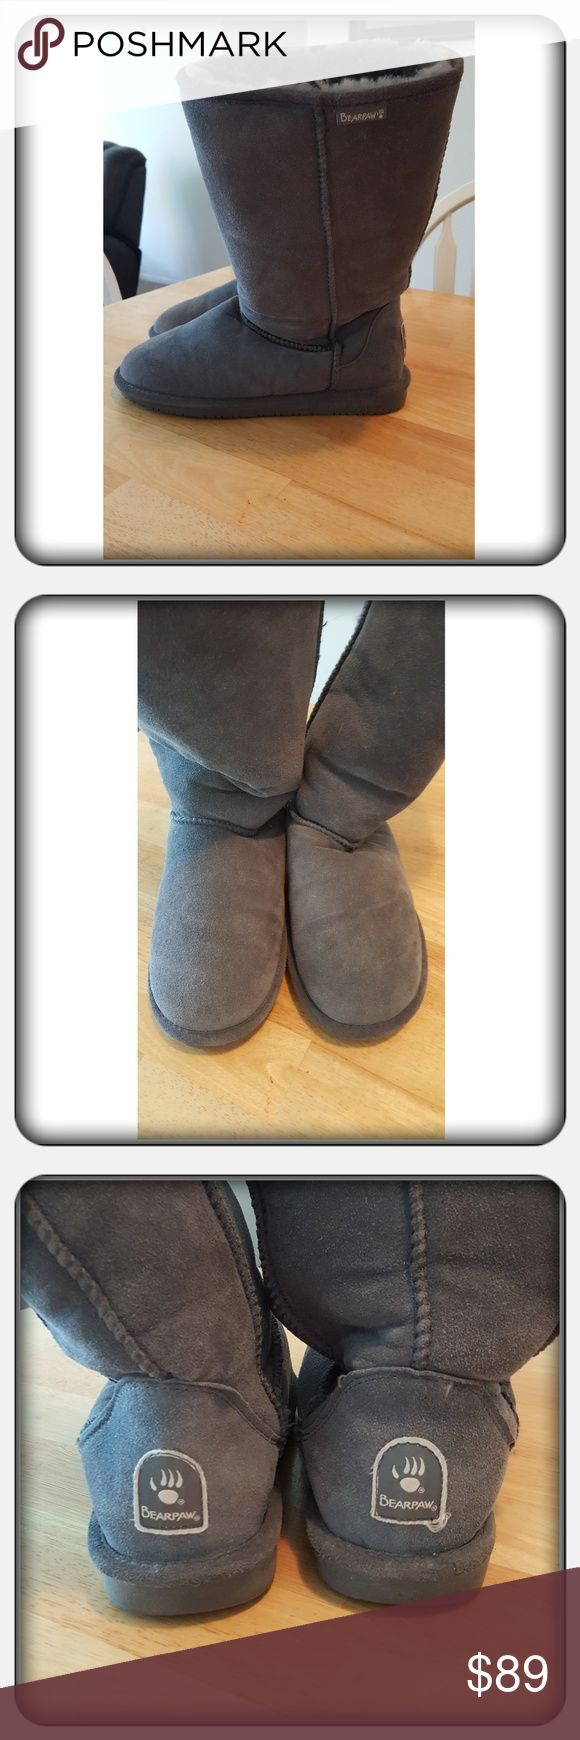 EUC Woman's Tall Grey Boots Sz 10M Woman's Tall Grey Boots Sz 10M By Bearpaw. These Are In Great Pre Loved Condition Worn Once Or Twice. There's No Wear To The Soles Or Damage I'm Aware Of. Great Boots For Fall And Winter Super Warm & Cozy 🚫 PAYPAL 🚫 TRADES 🚫 LOWBALLING ❤ BearPaw Shoes Winter & Rain Boots